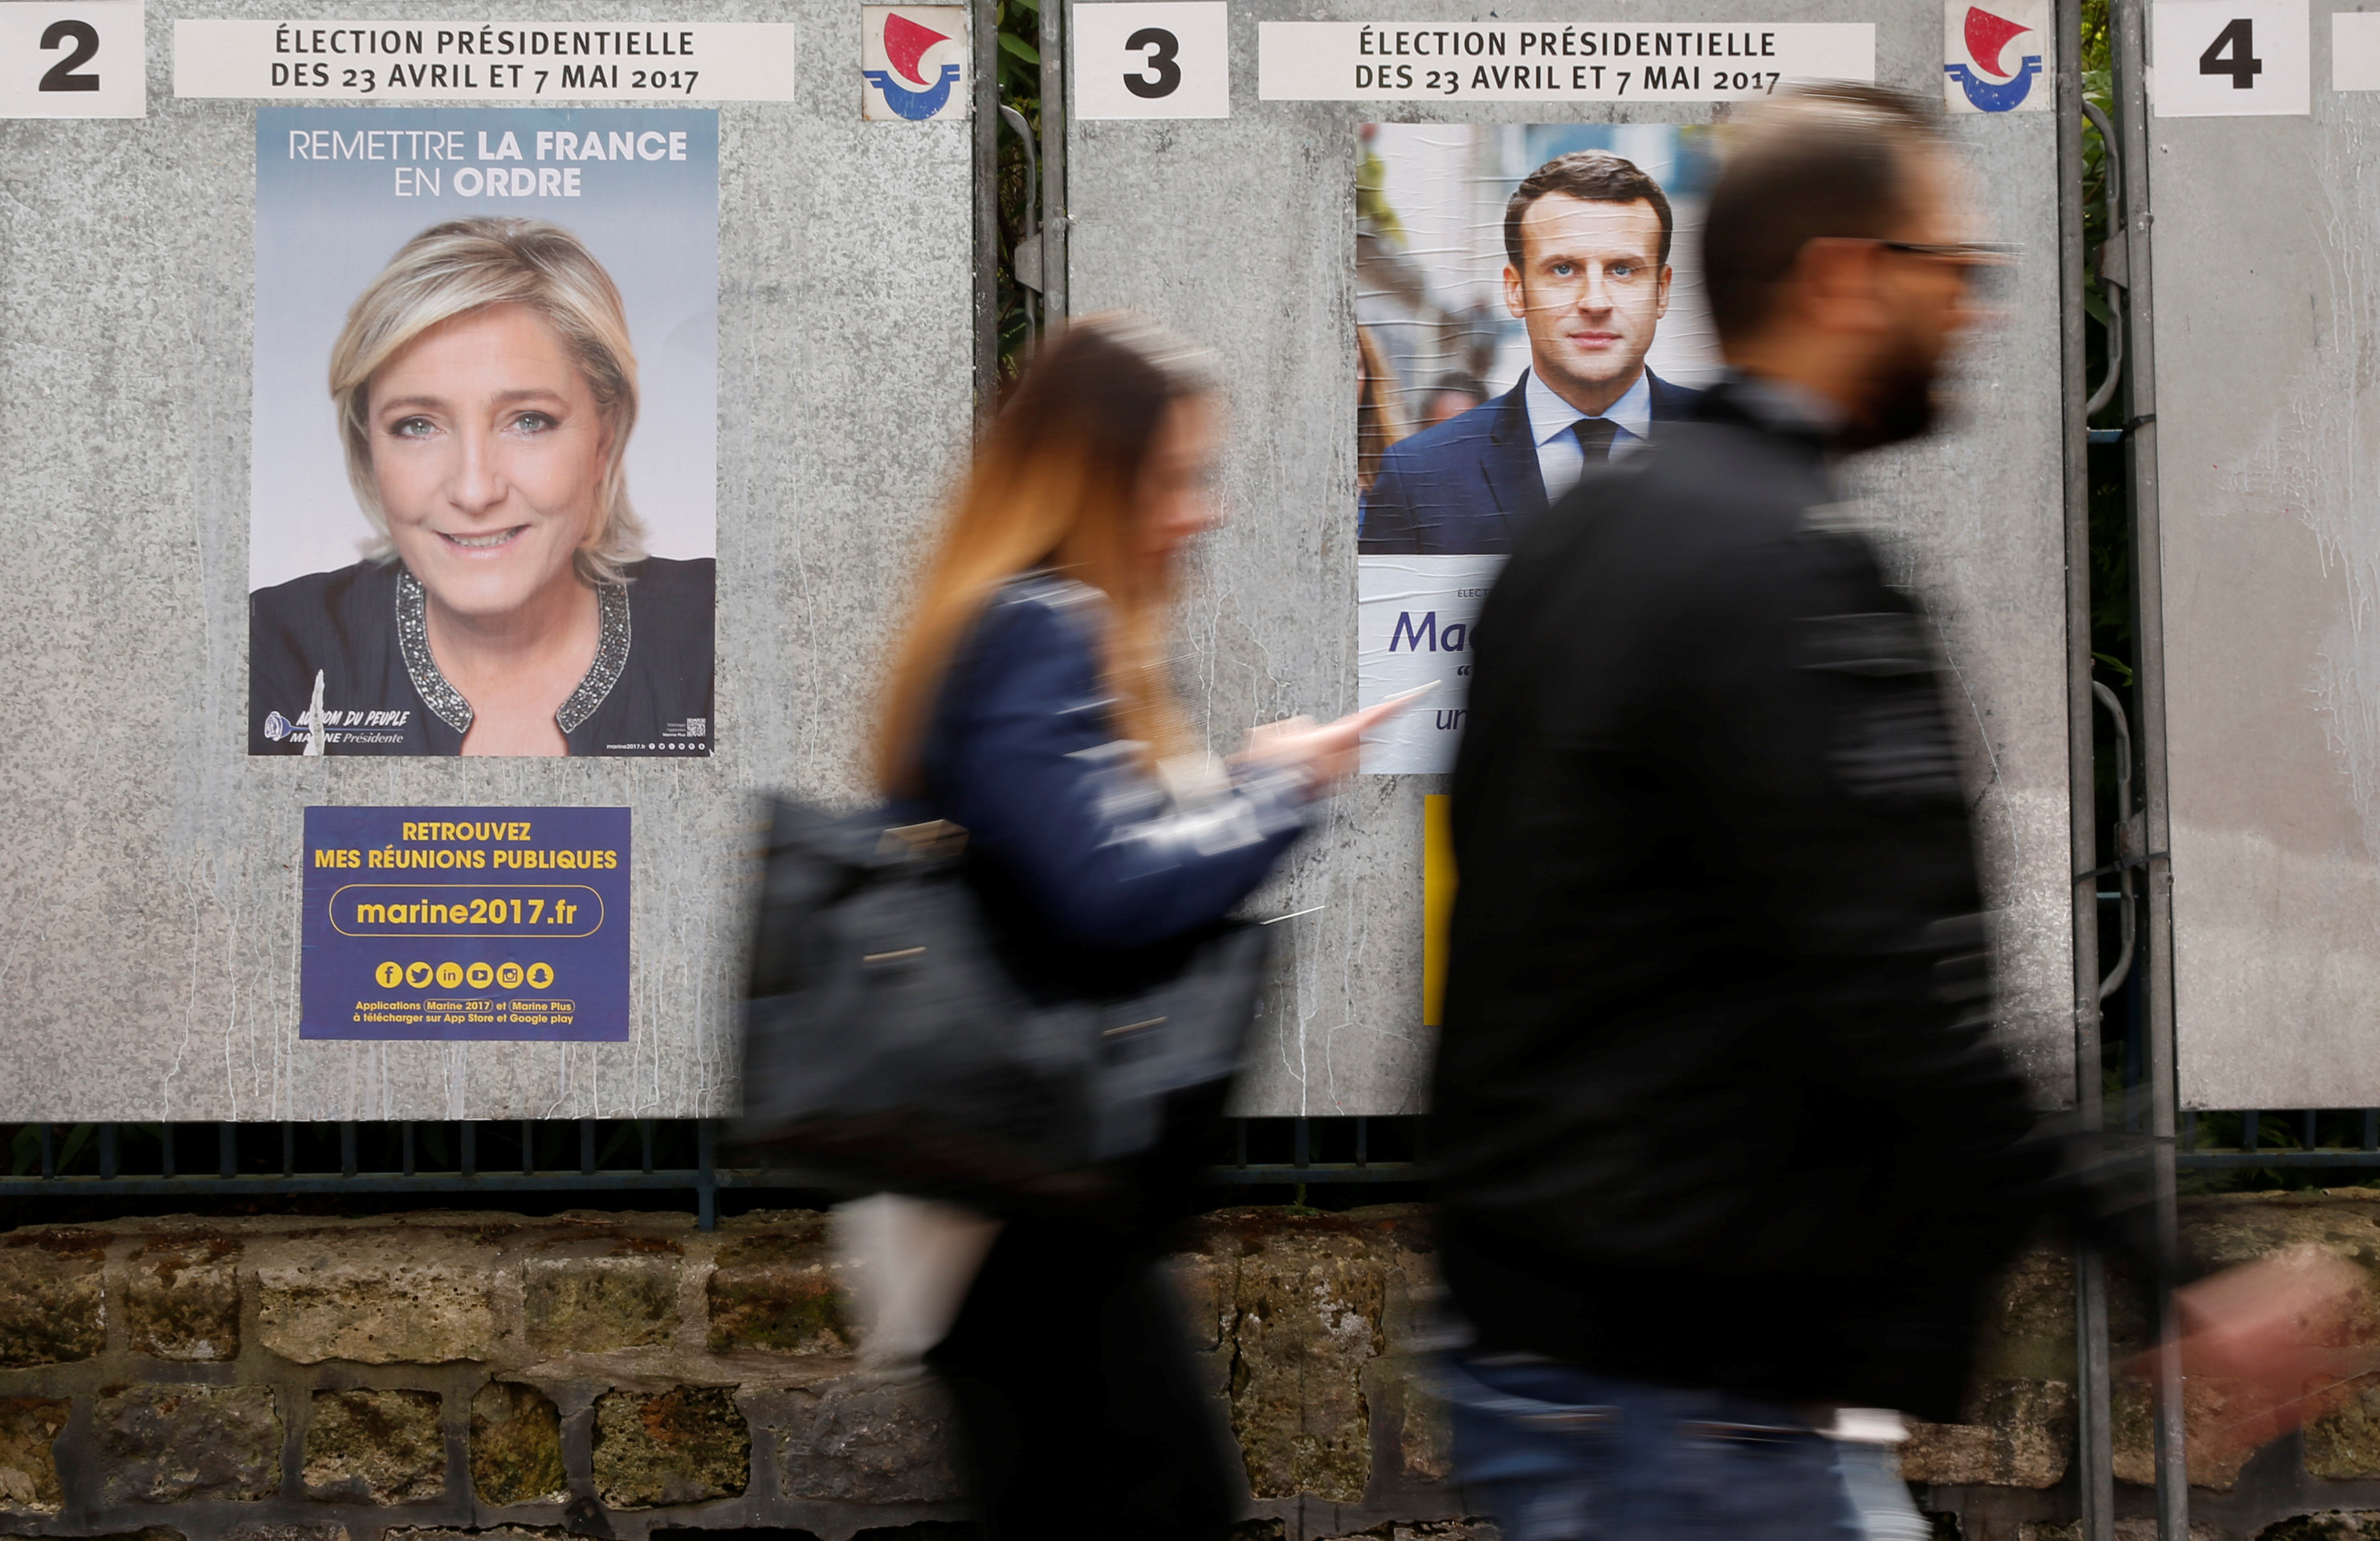 People walk past campaign posters of Marine Le Pen (L), French National Front (FN) political party leader, and Emmanuel Macron (R), head of the political movement En Marche! (Onwards!), two of the eleven candidates who run in the 2017 French presidential election in Paris, France, April 10, 2017